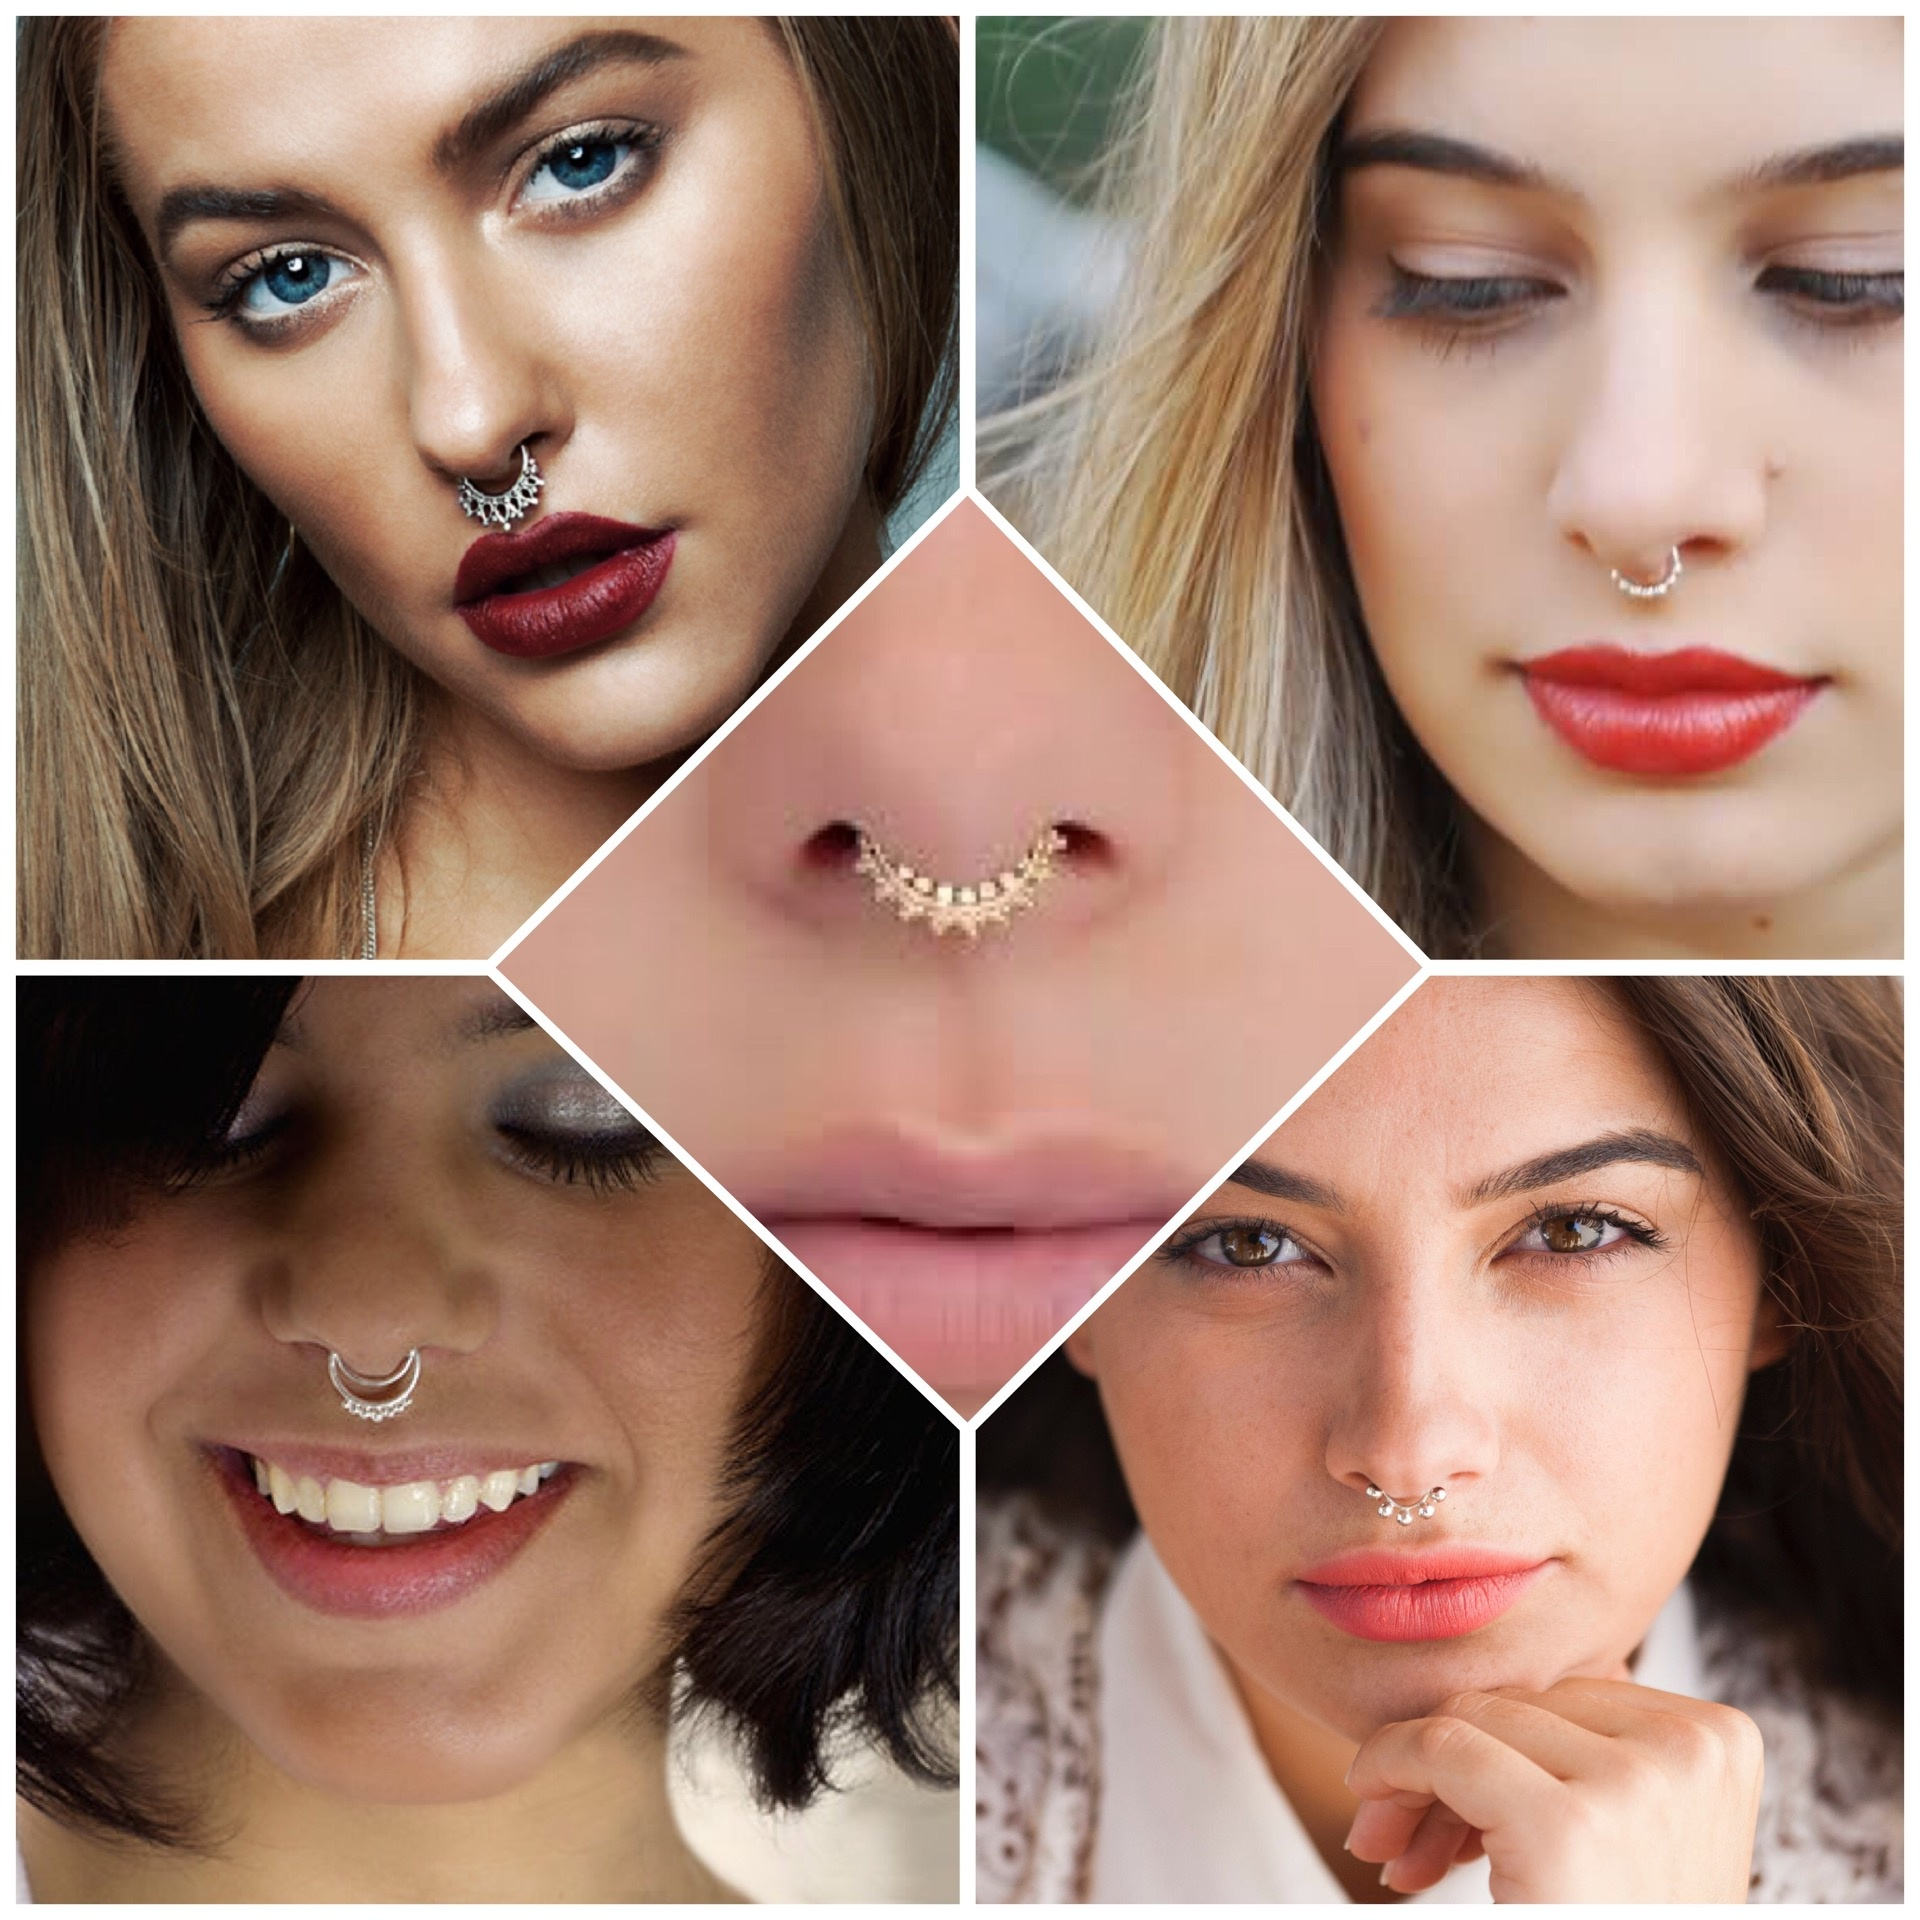 What Do Guys Think About Girls With Septum Piercing Quora